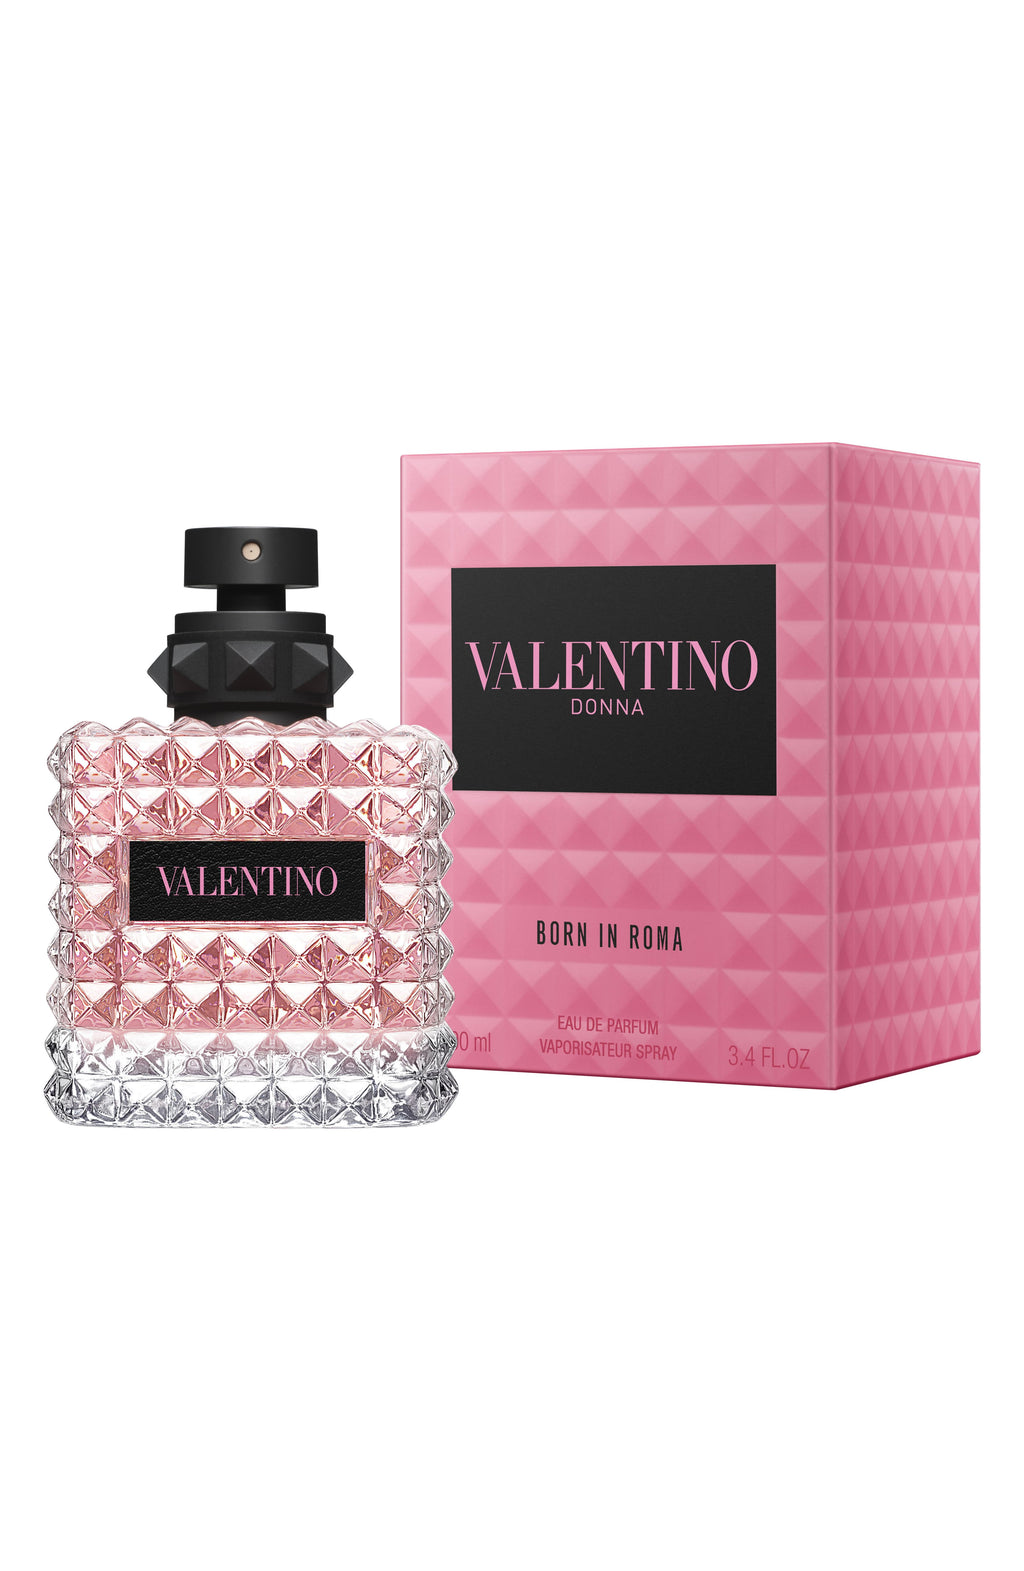 VALENTINO DONNA BORN IN ROMA WOMEN EAU DE PARFUM SPRAY